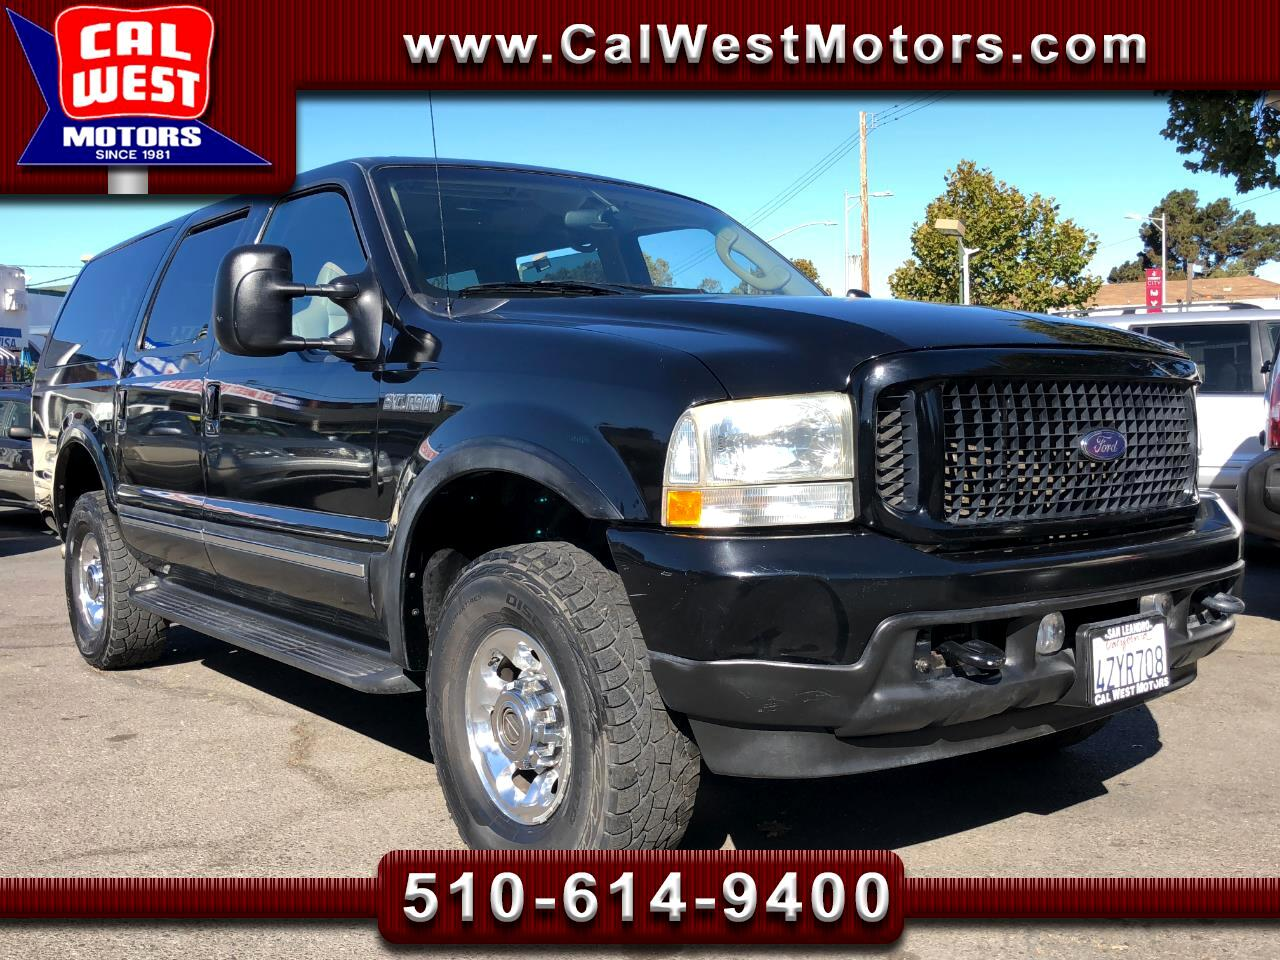 2003 Ford Excursion 4X4 Limited 3Rows Powerful VeryClean GreatMtnceHis